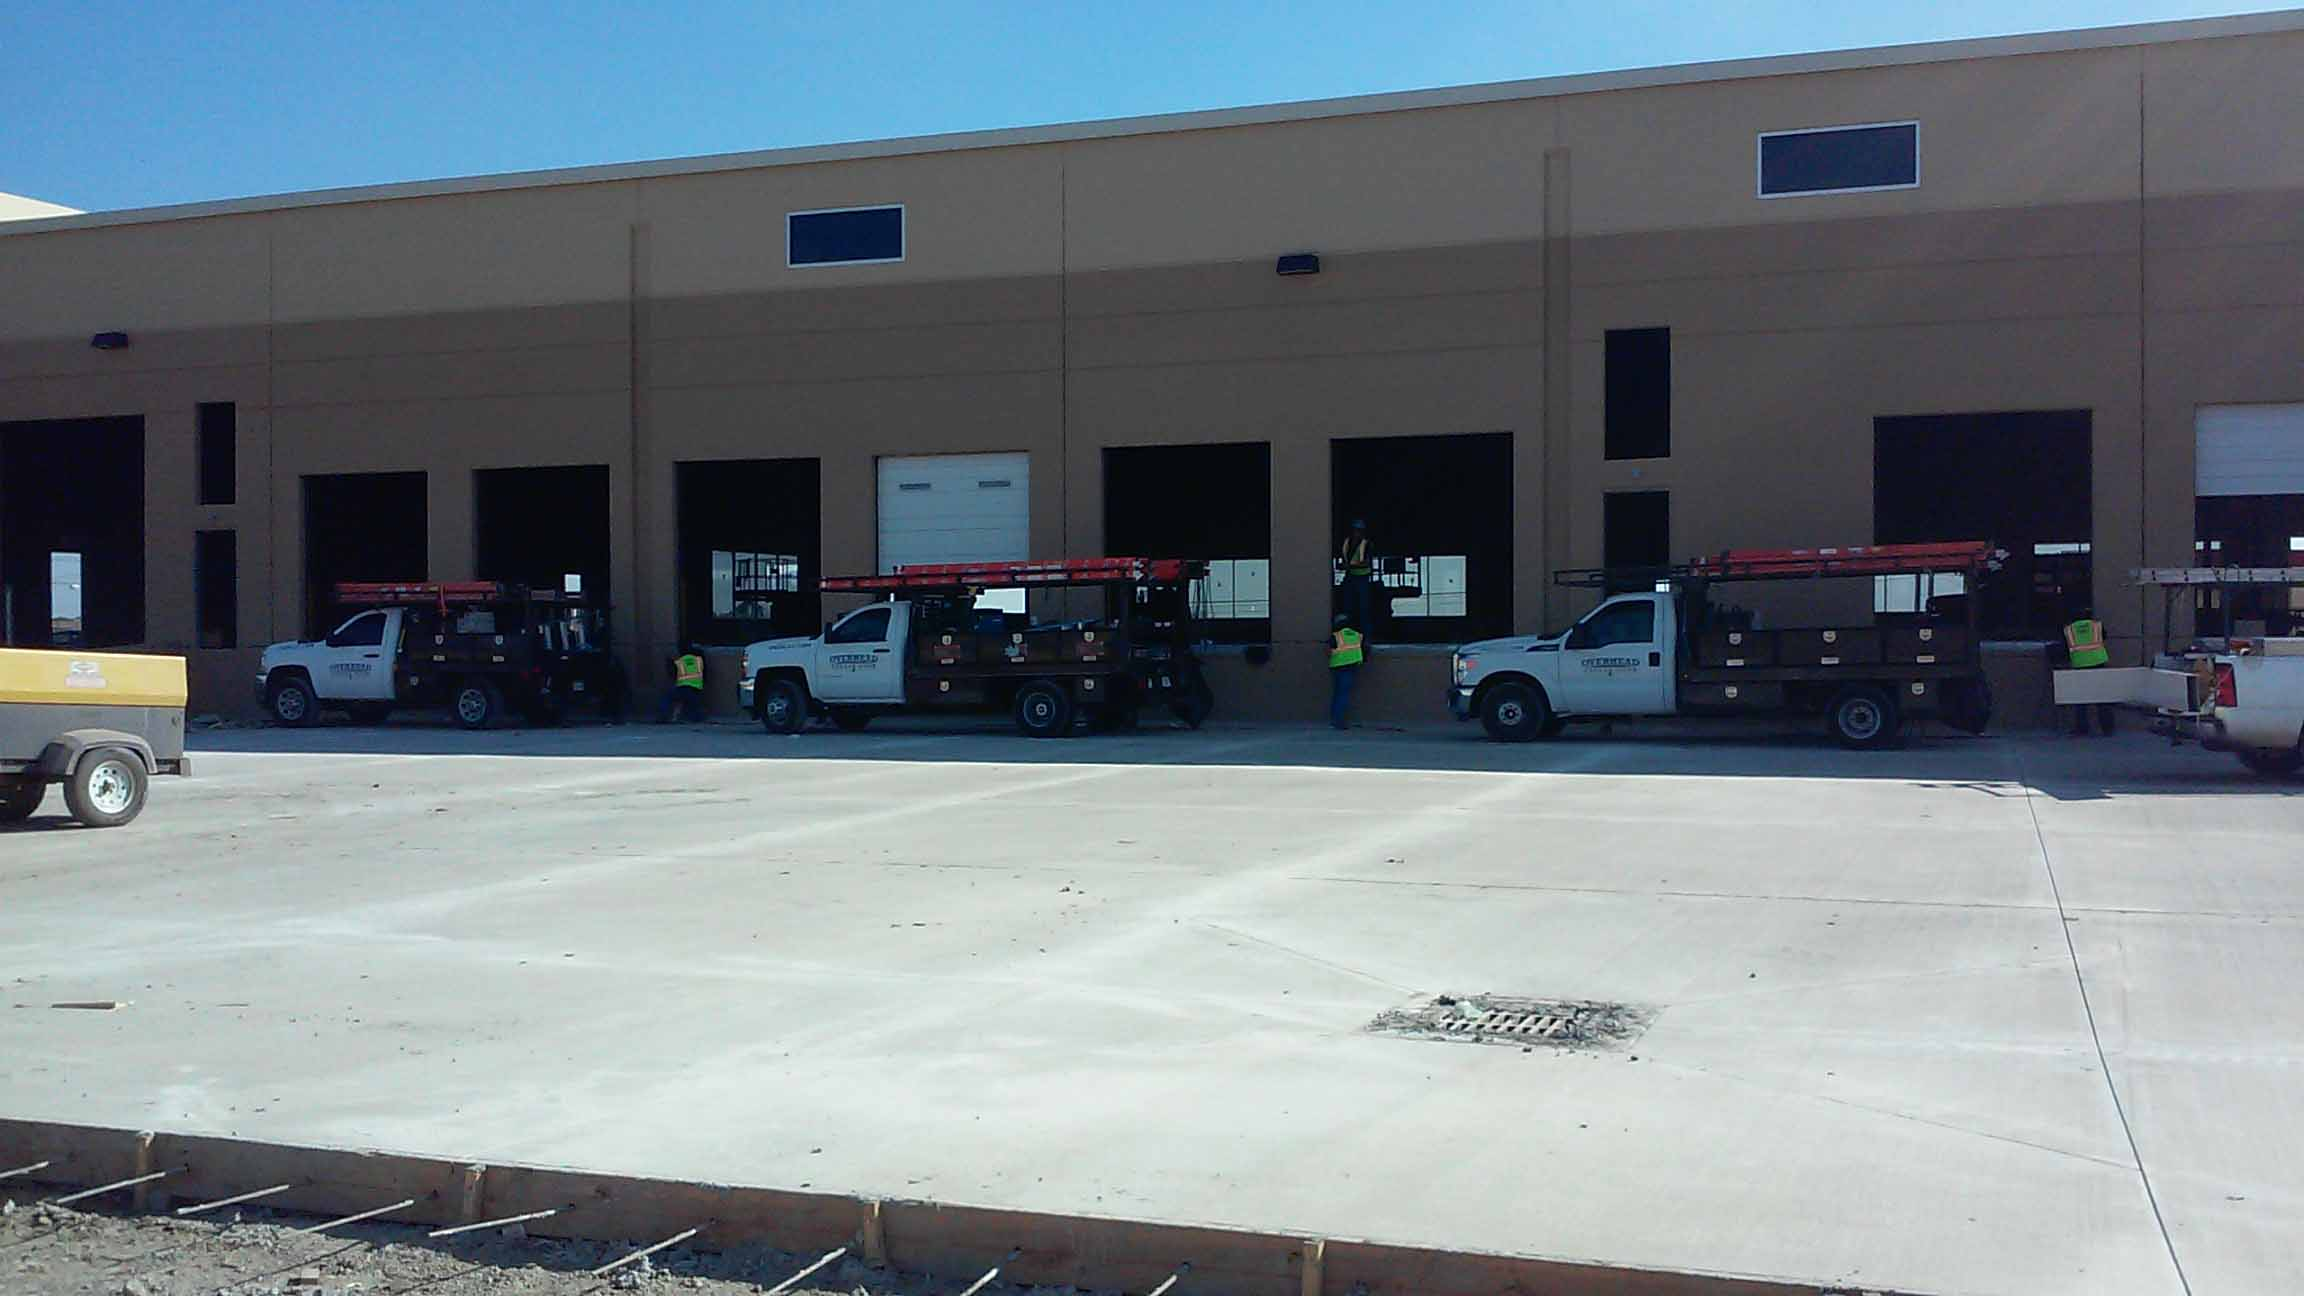 Commercial garage door installation Western Gate Quality Industries - Denton, TX - Completed 2015 - Contractor Links Construction